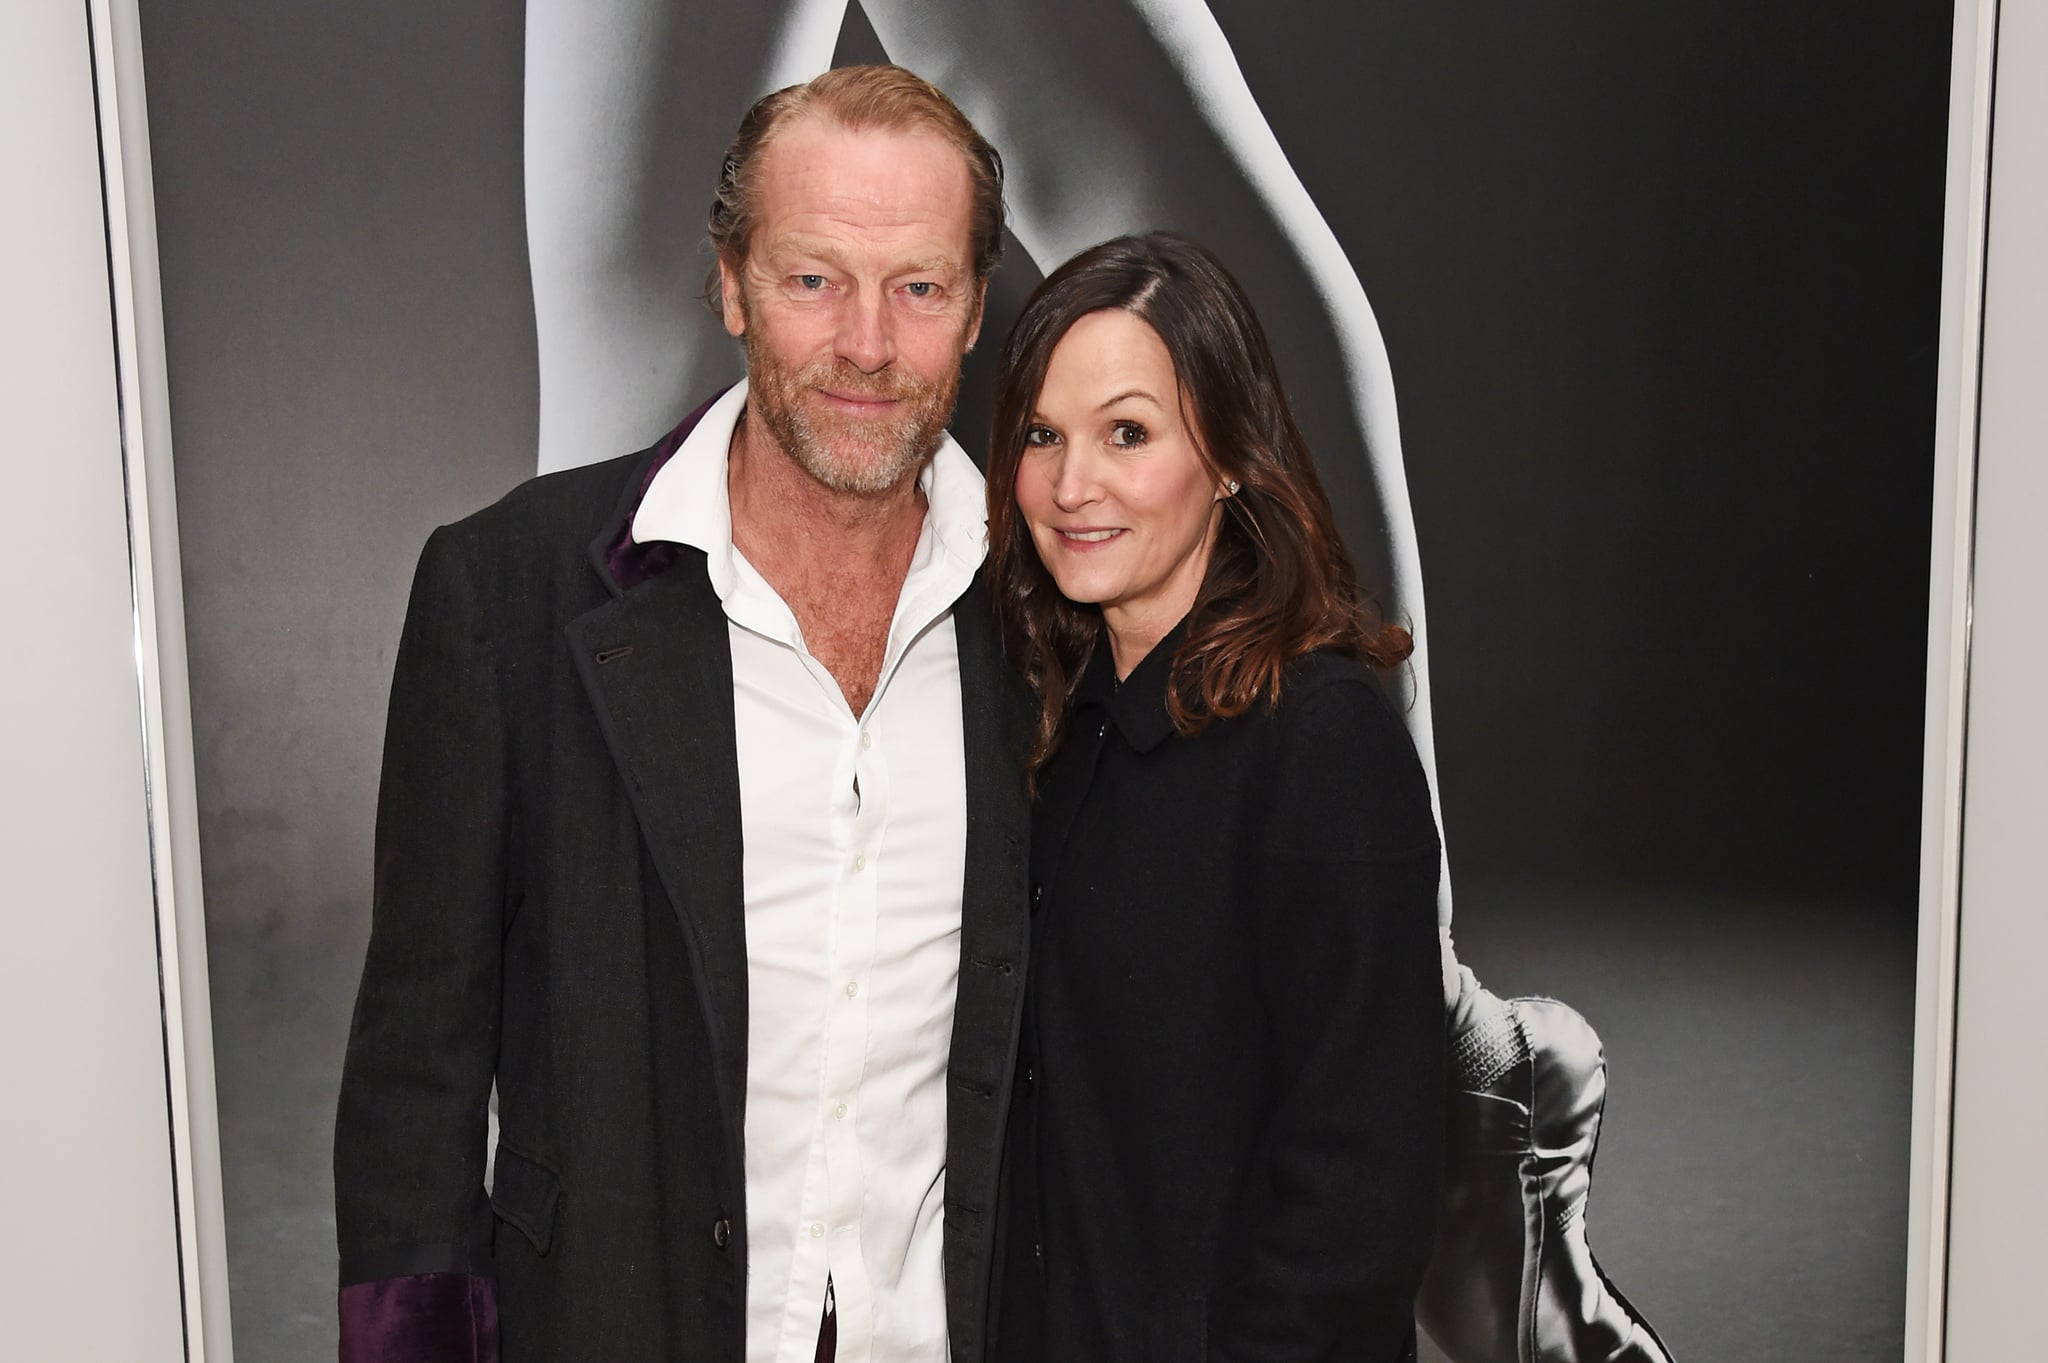 Iain Glen with beautiful, Wife Charlotte Emmerson